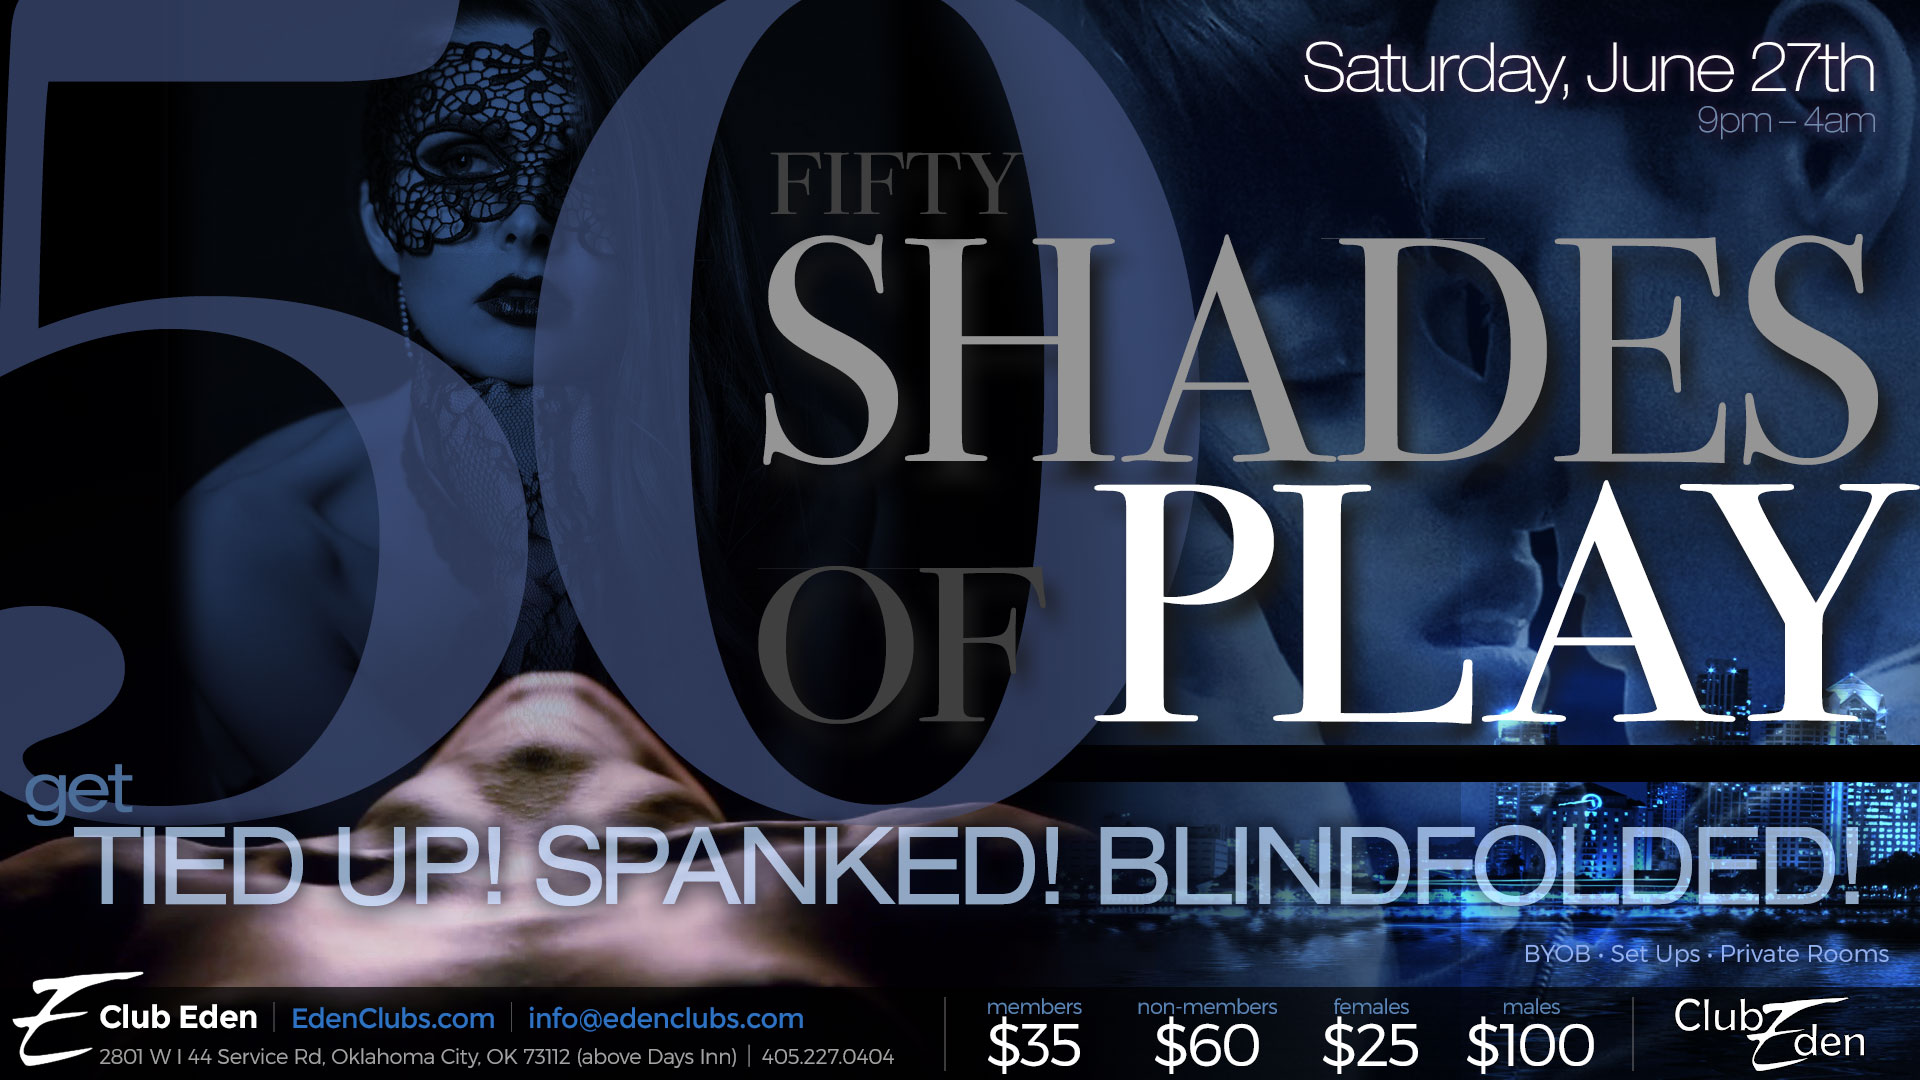 062720-OKC-fifty-shades-tv